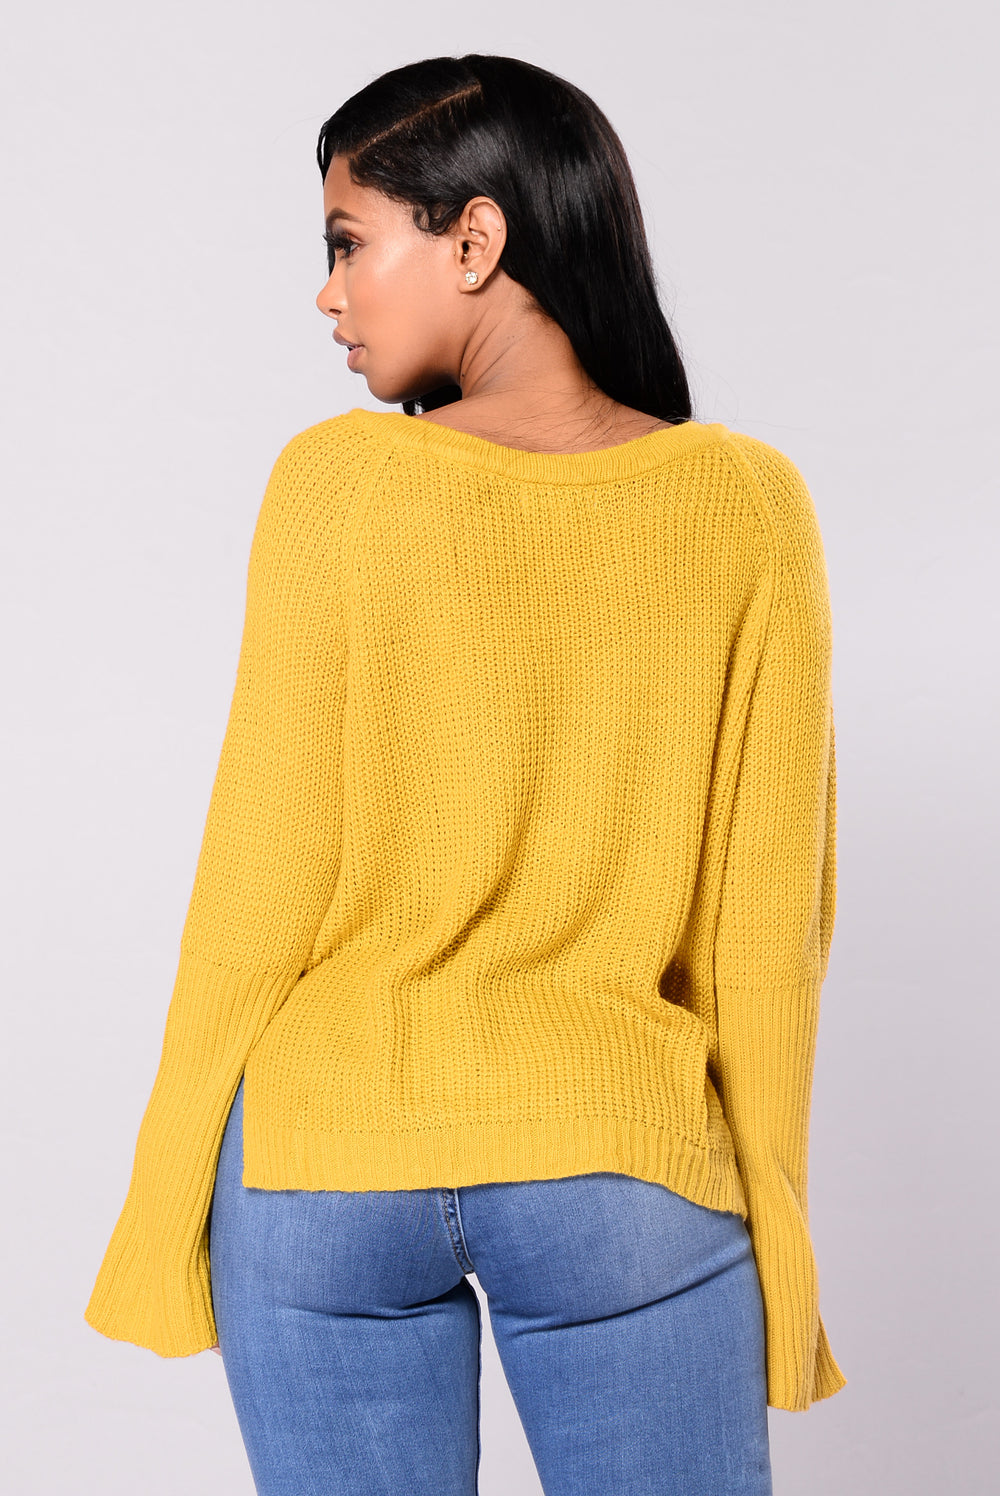 Bellatrix Crop Sweater - Mustard